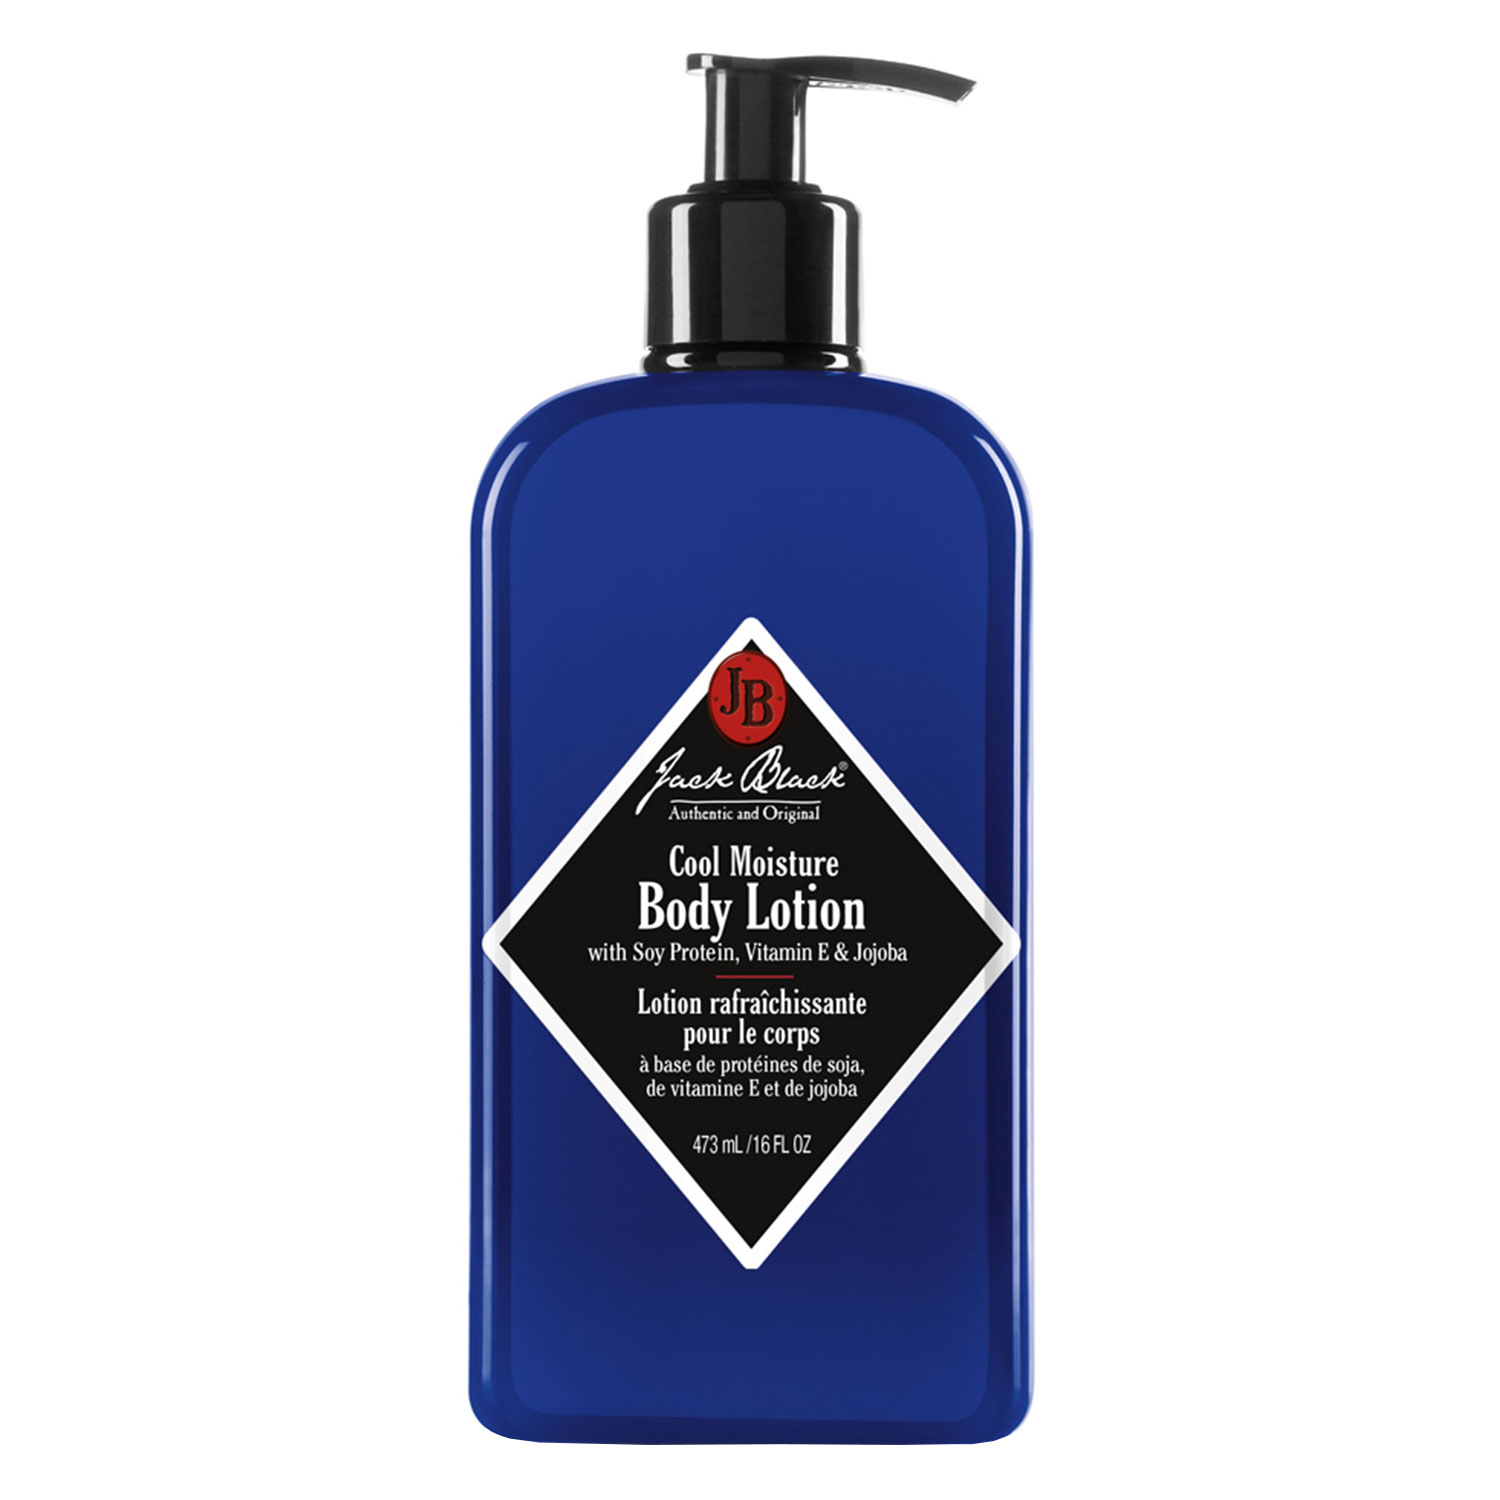 Jack Black - Cool Moisture Body Lotion